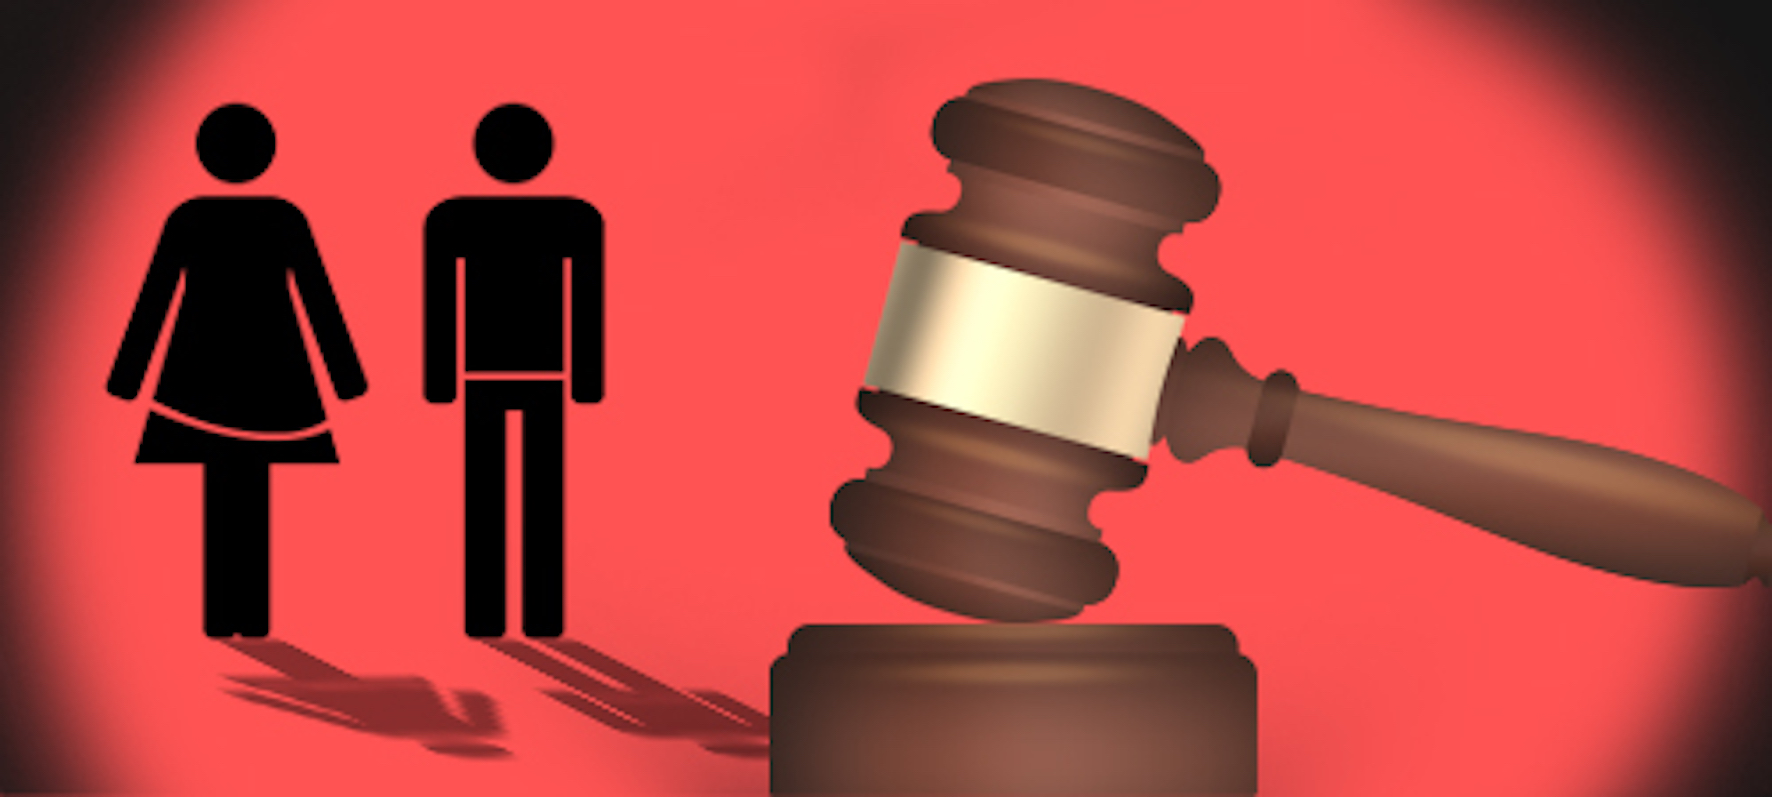 Unilateral Withdrawal of Consent for Mutual Consent Divorce  : Pankaj Kumar & Co. | Law Firm